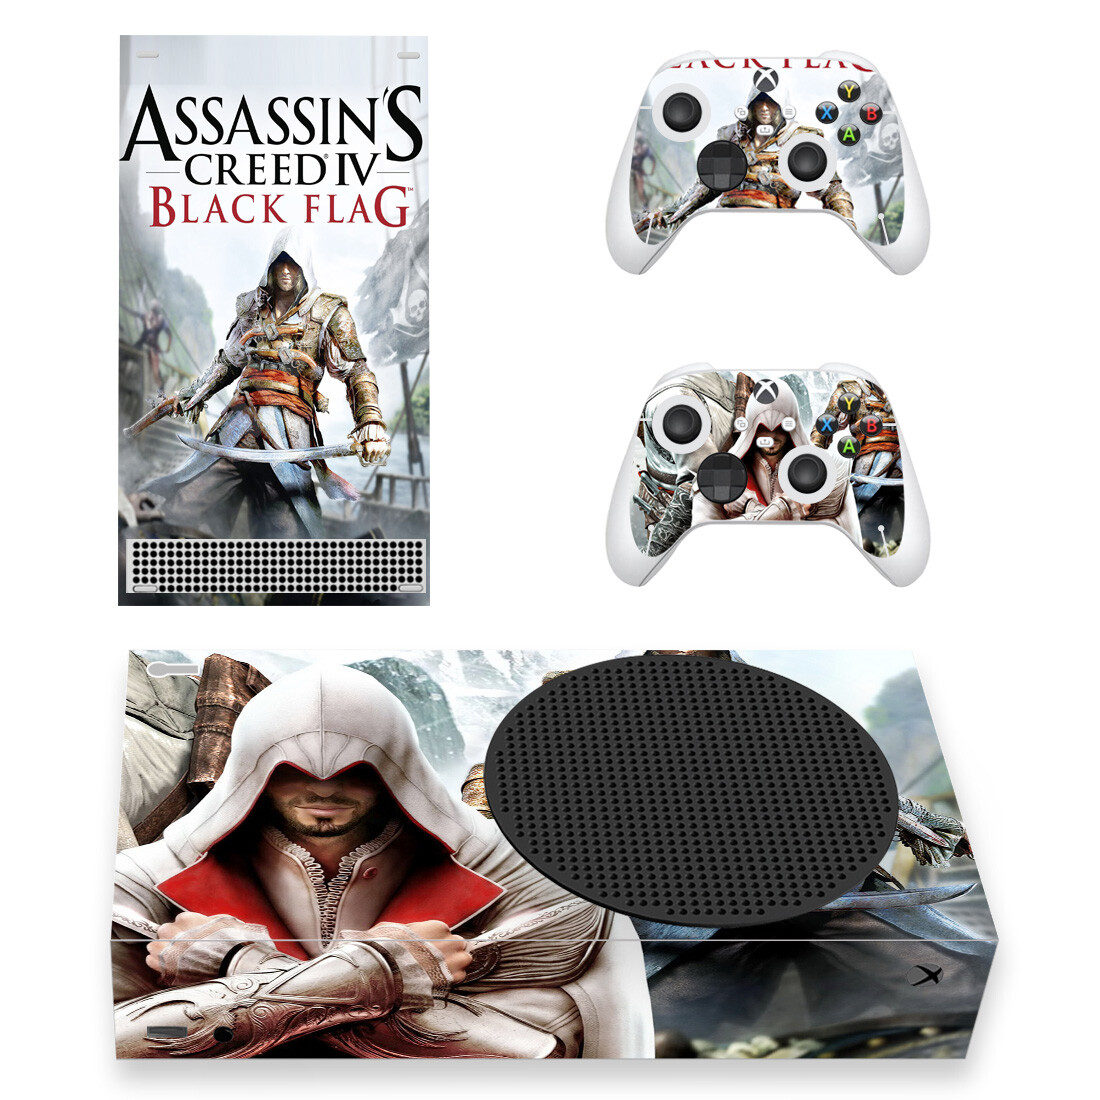 Assassin's Creed IV Black Flag Xbox Series S Skin Sticker Decal